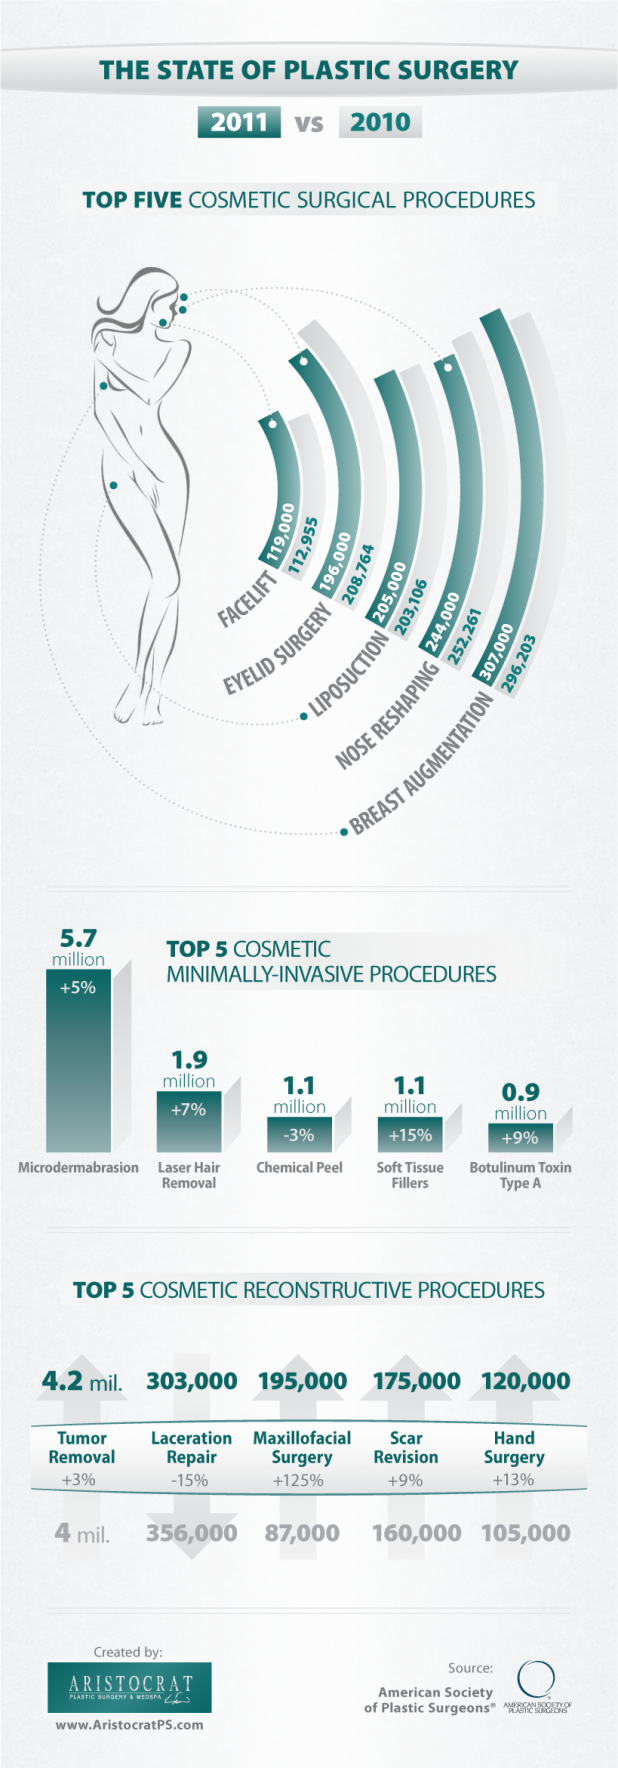 The State of Plastic Surgery - 2010 vs 2011